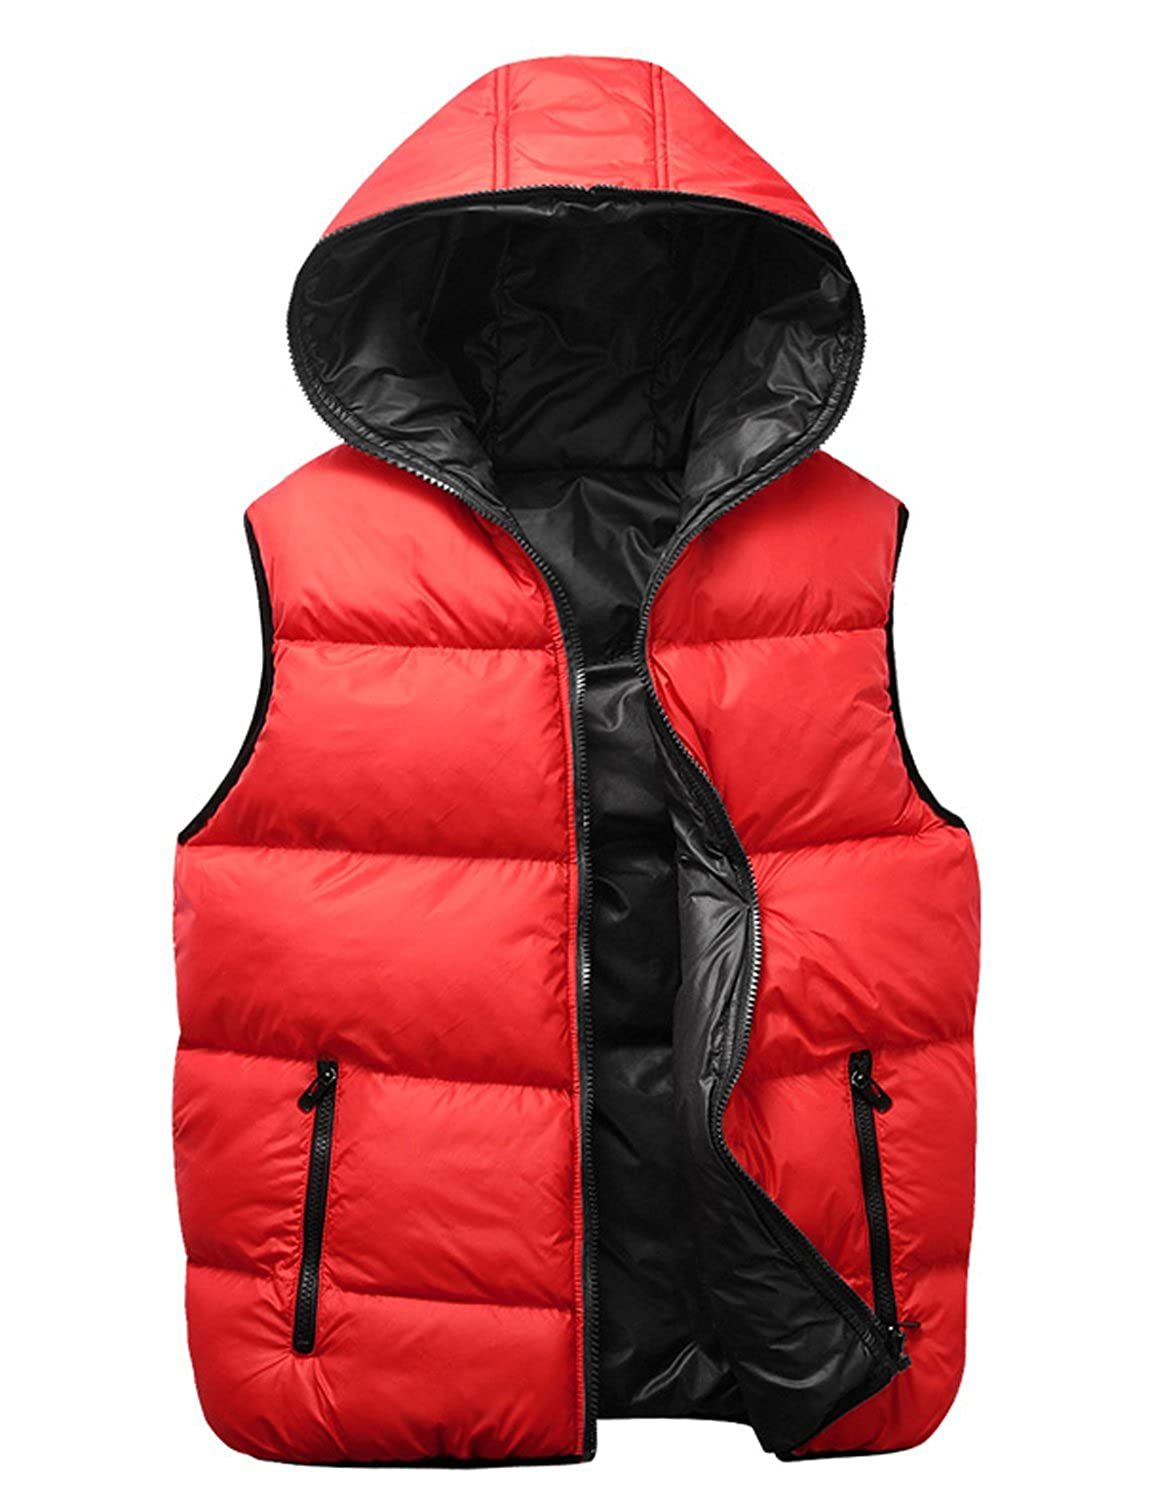 Only Faith Boy's Autumn & Winter Glazing Down-like Hooded Vest Couples Waistcoat